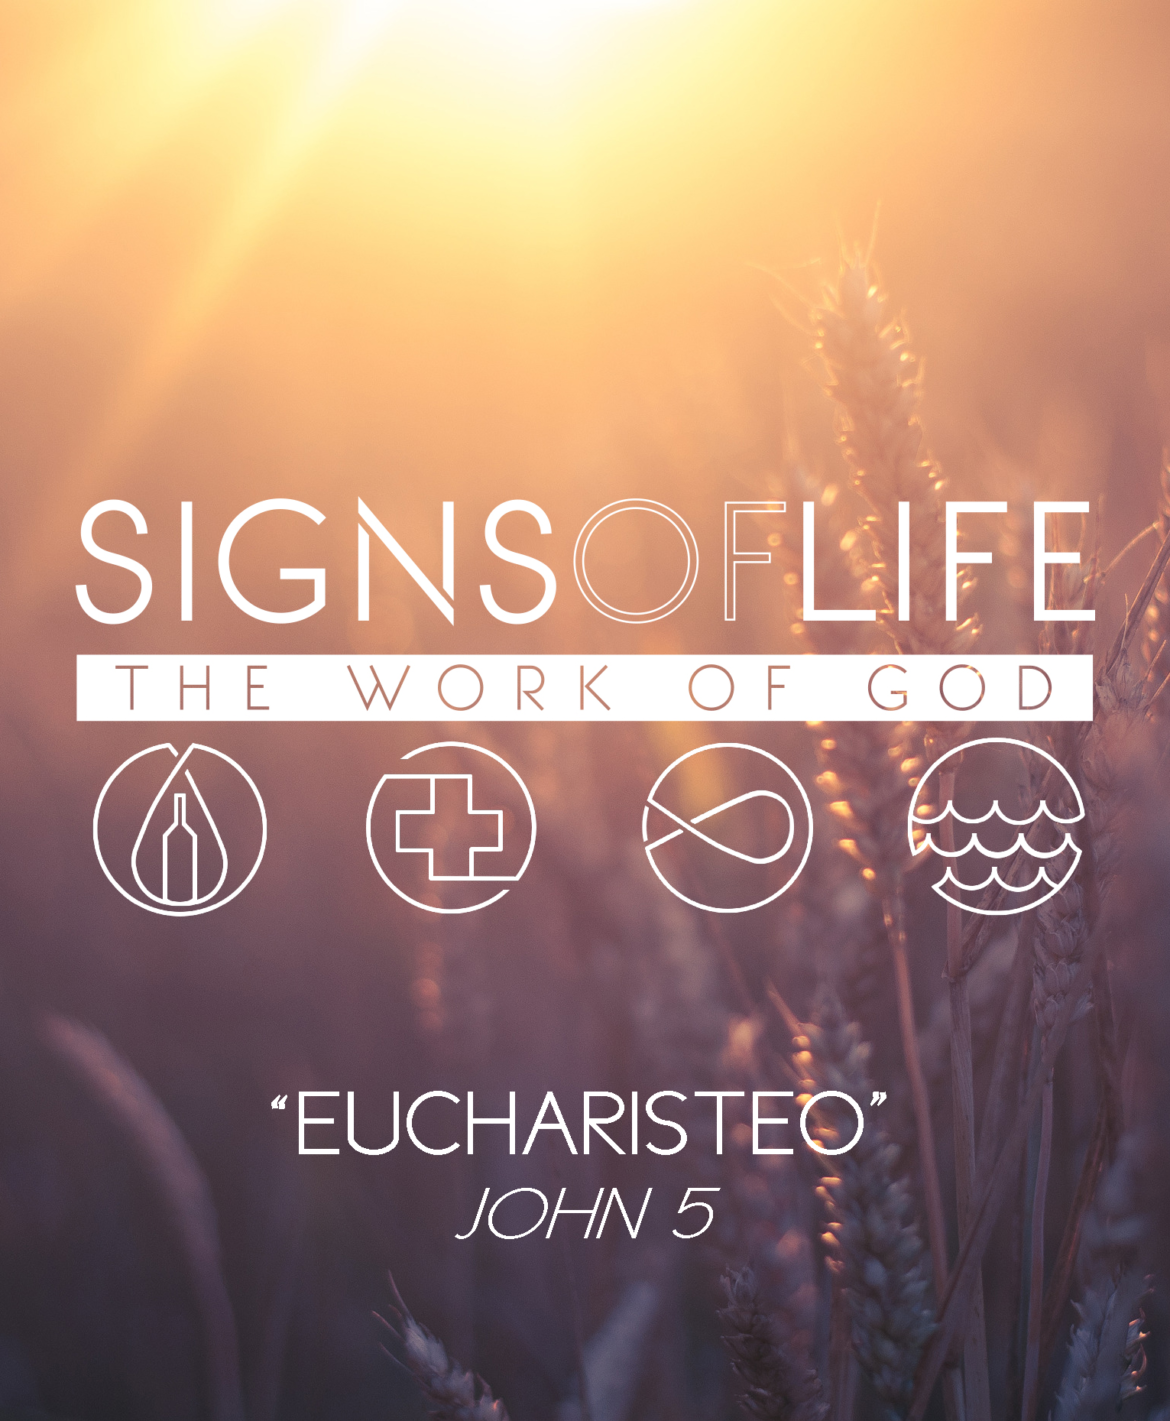 Eucharisteō: Signs of Life